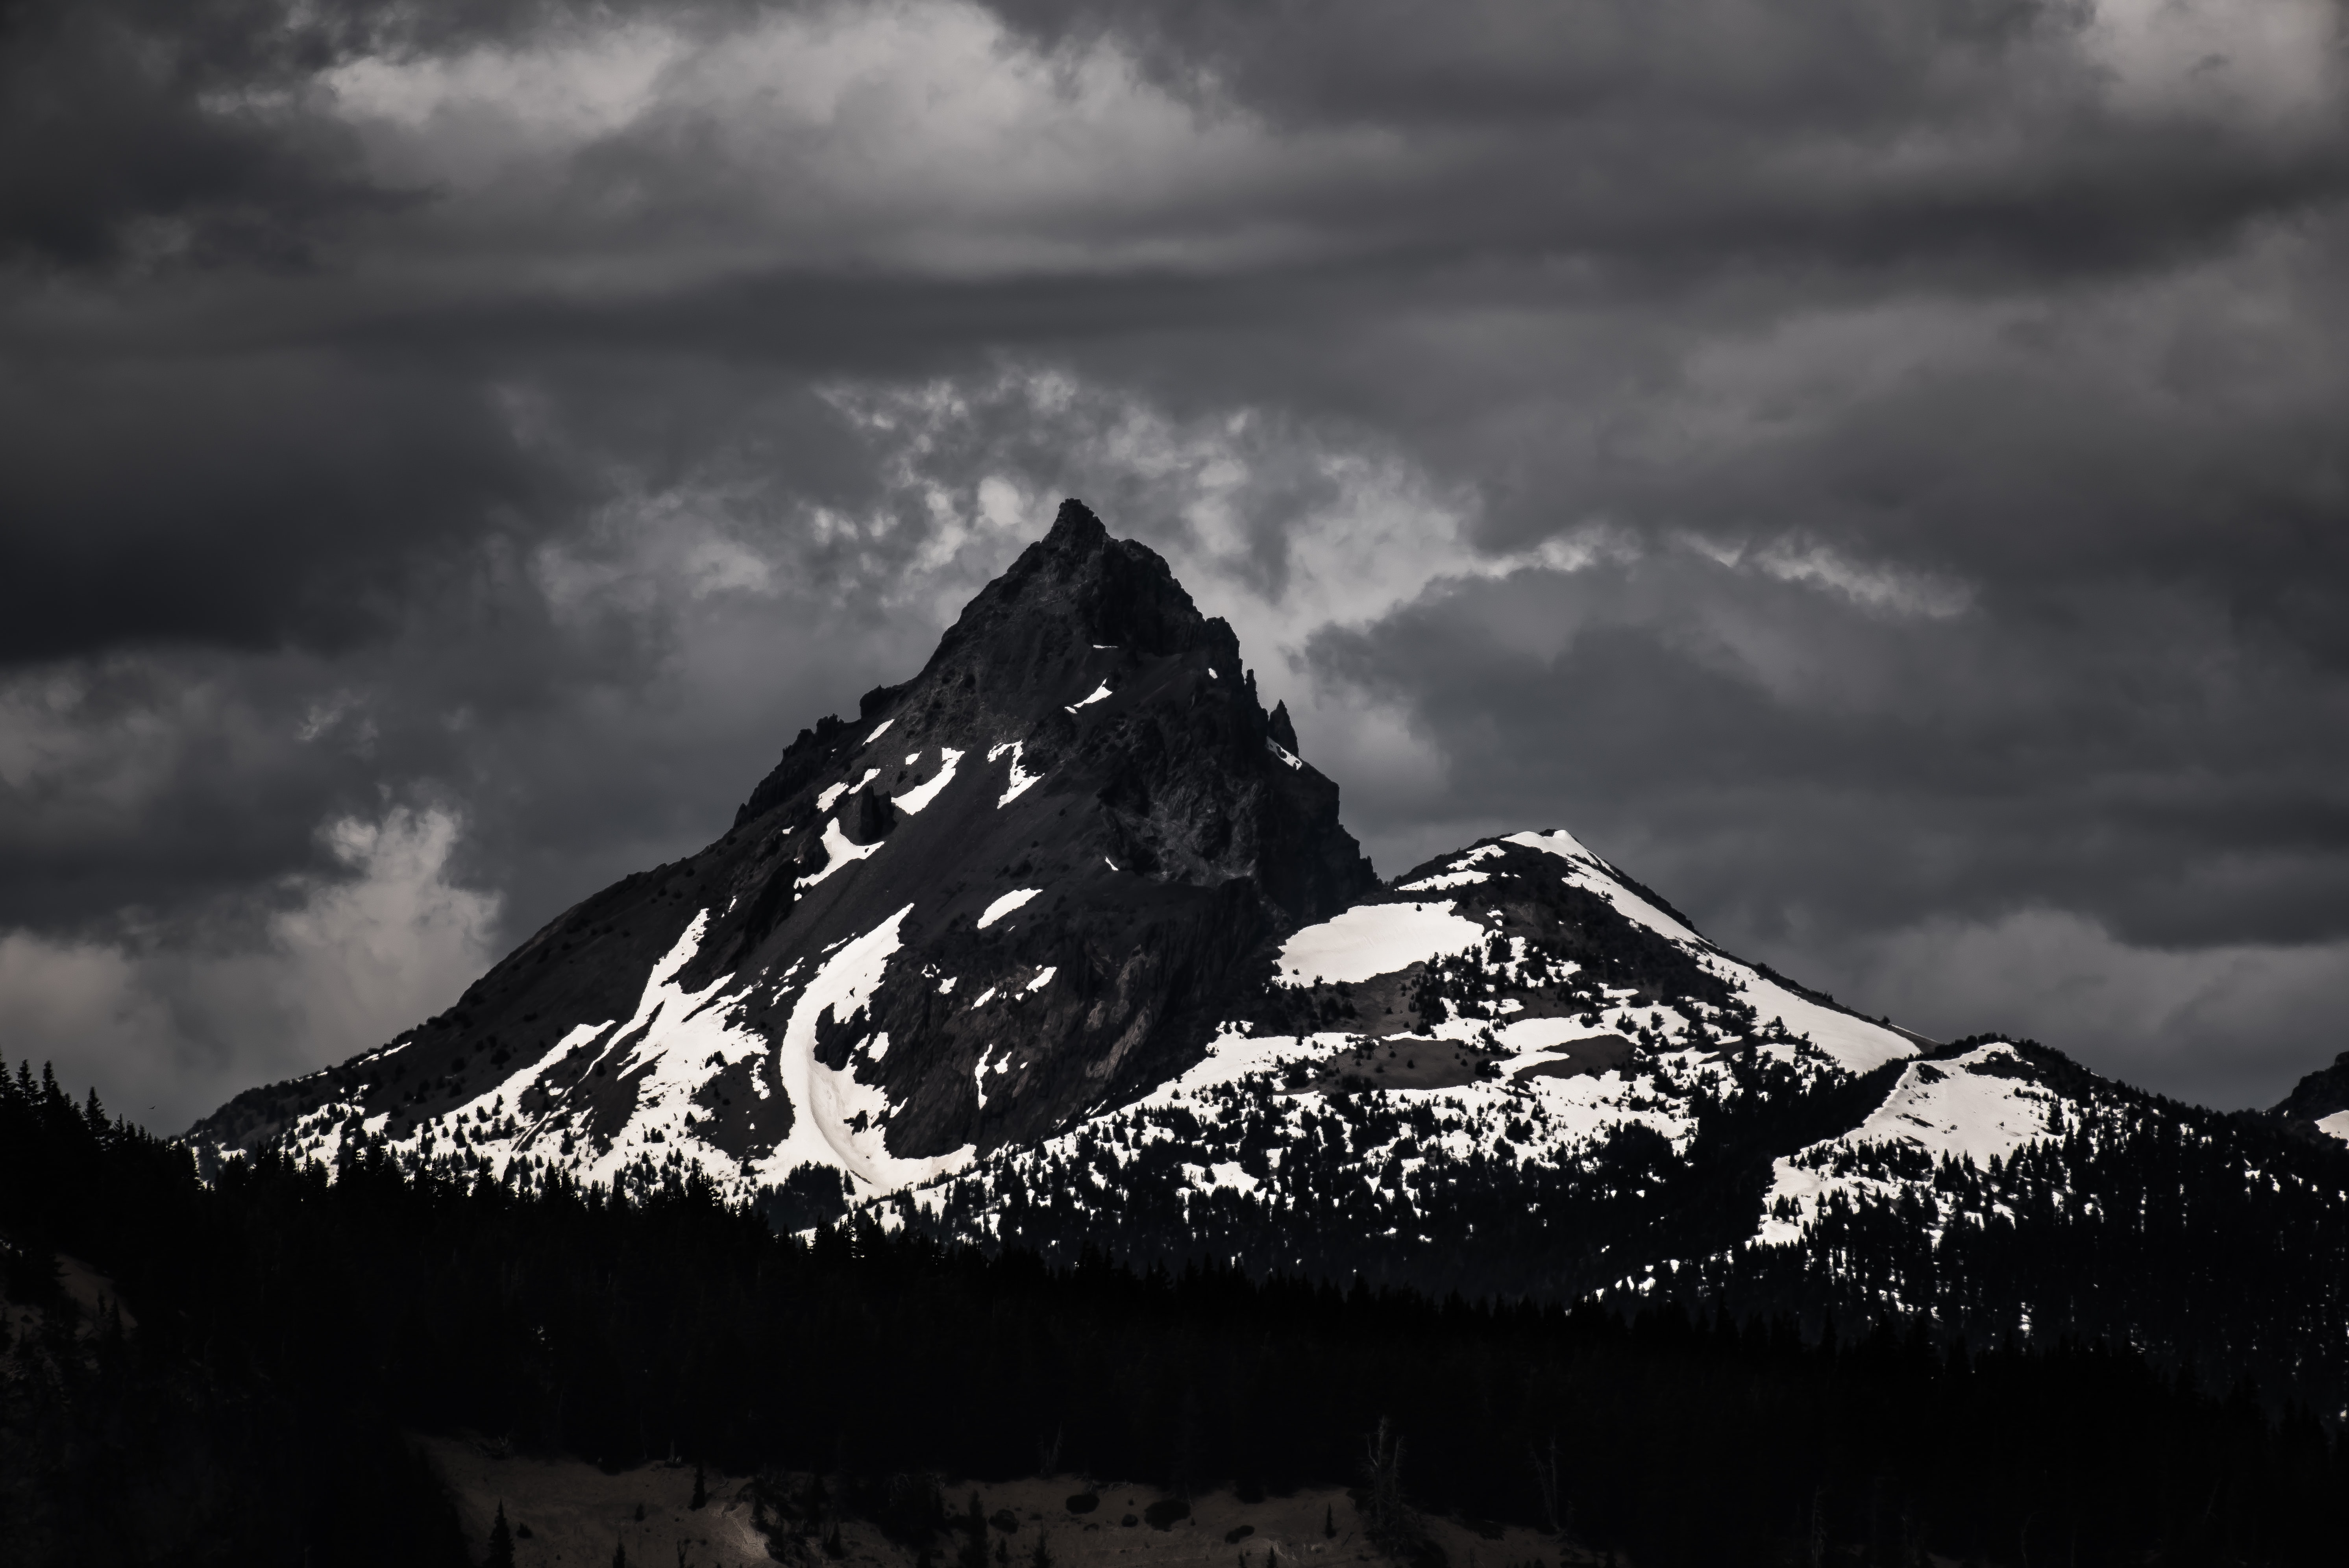 A desaturated shot of a dark mountain covered in patches of white snow under a gray sky